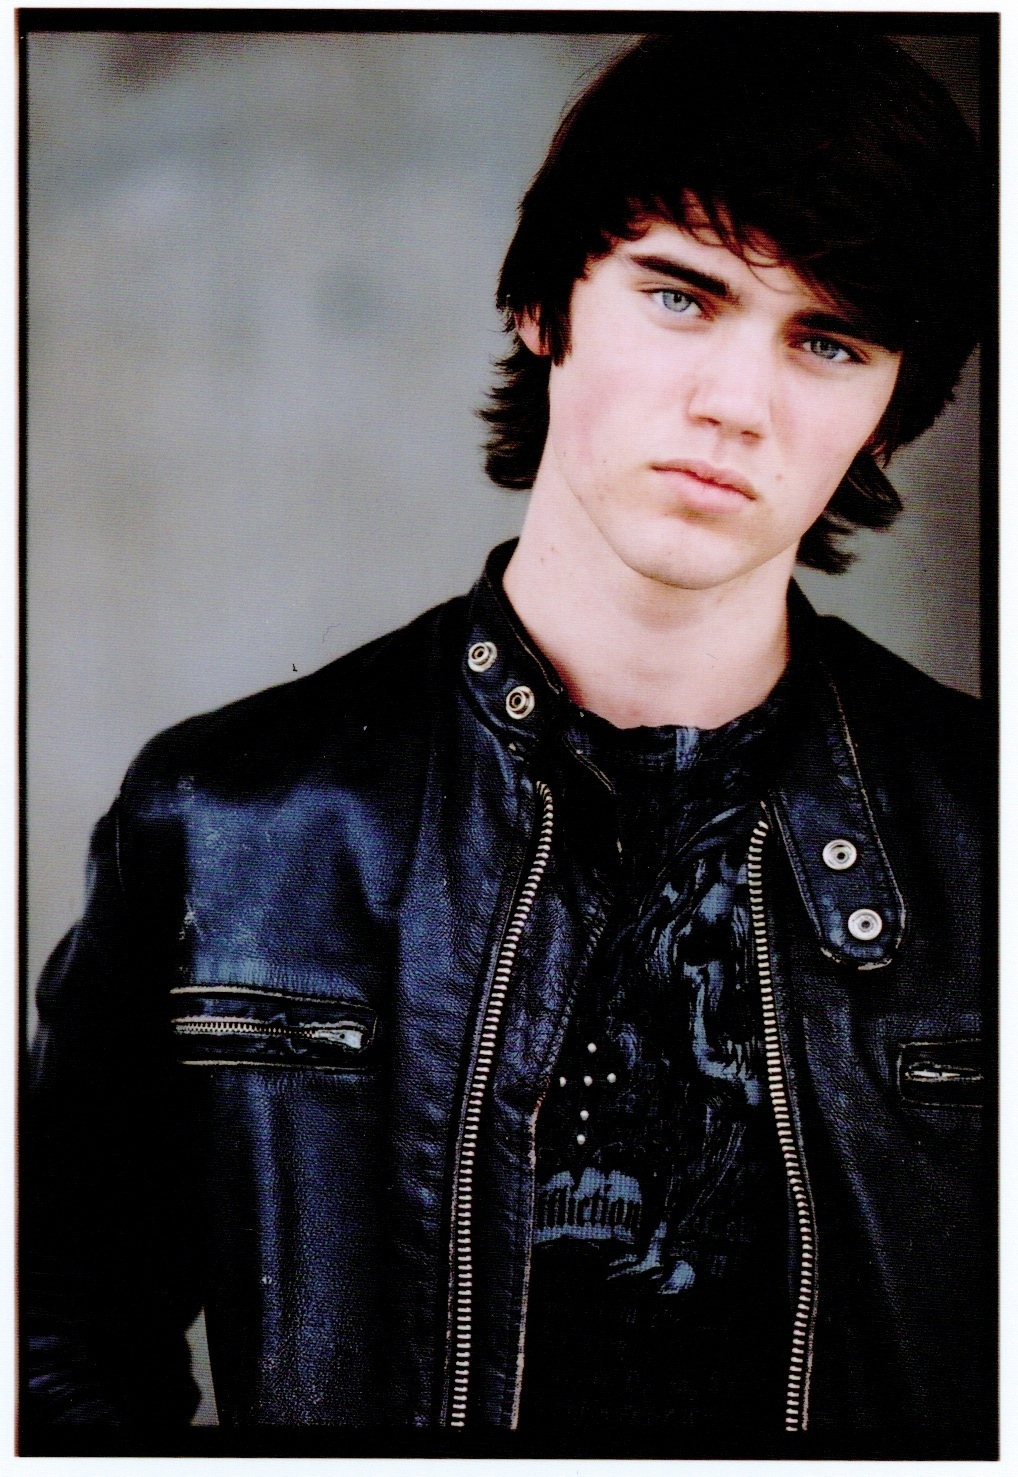 cameron bright - Cameron Bright Photo (28228975) - Fanpop